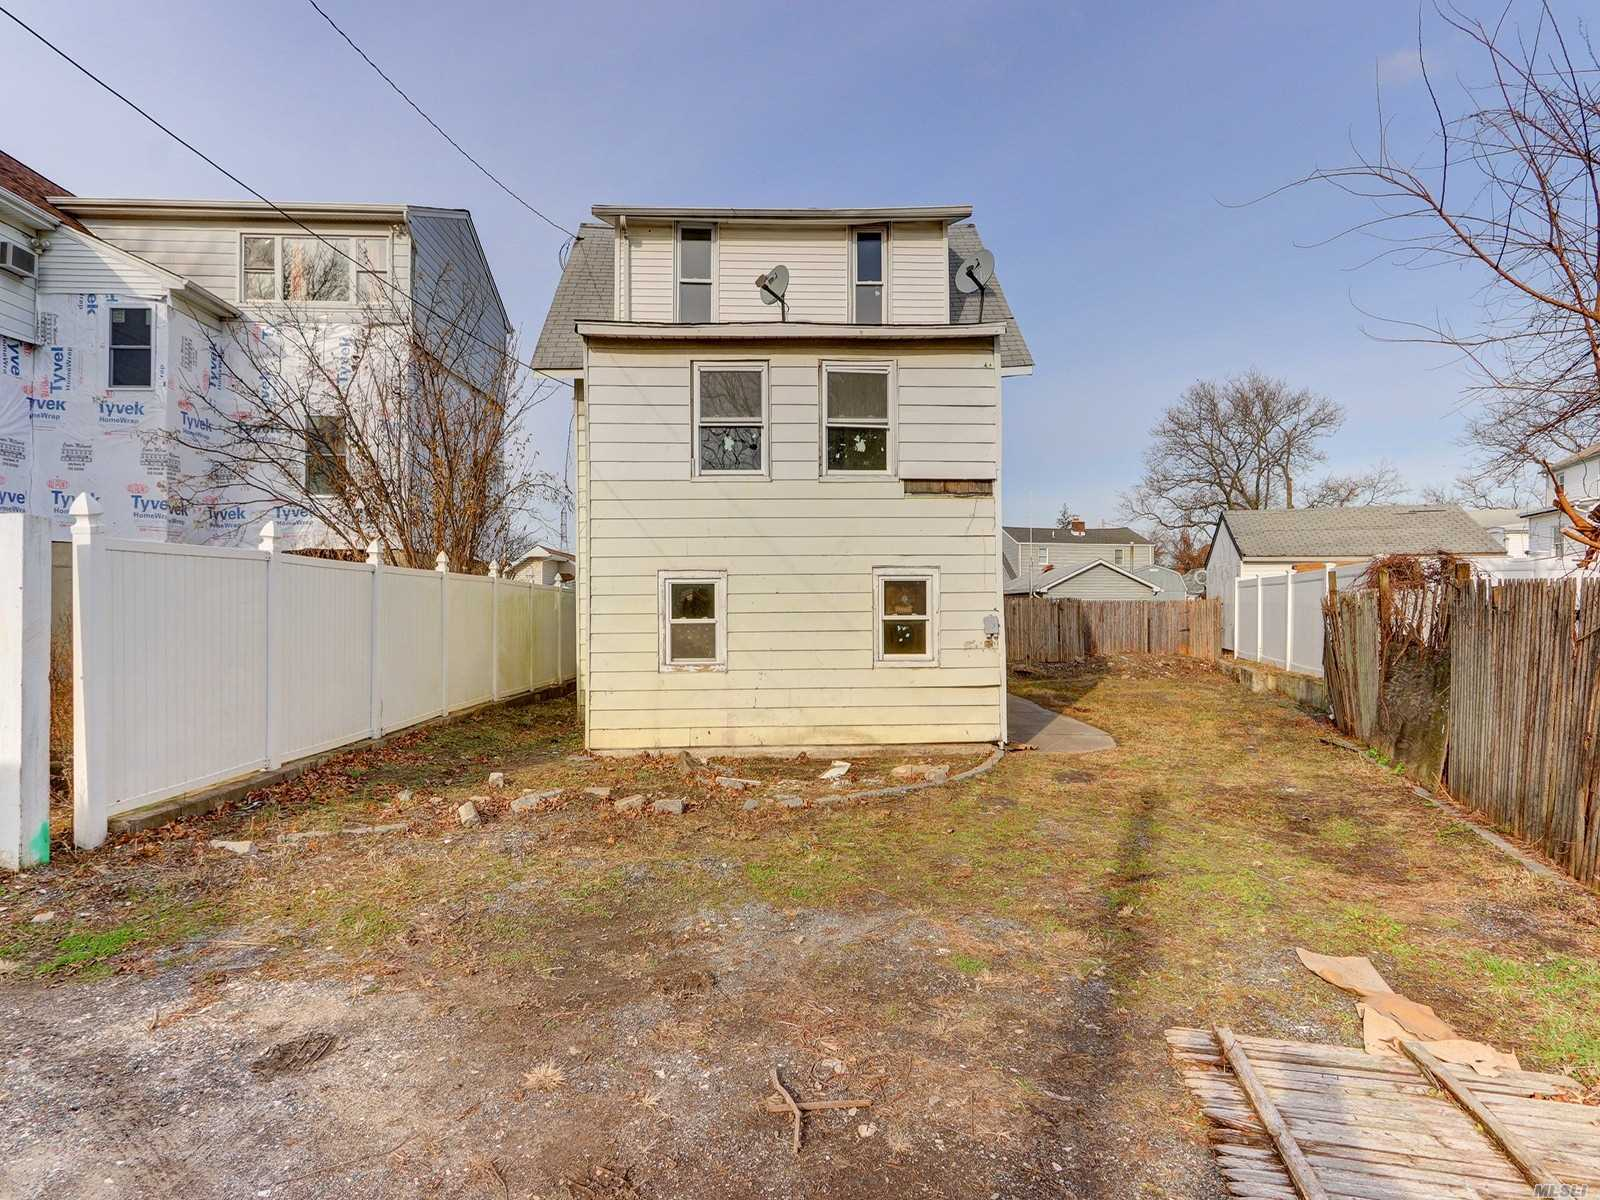 Colonial Style Home. This Home Features 4 Bedrooms, 2 Full Baths, Formal Dining Room & Eat In Kitchen. Centrally Located To All. Don't Miss This Opportunity!